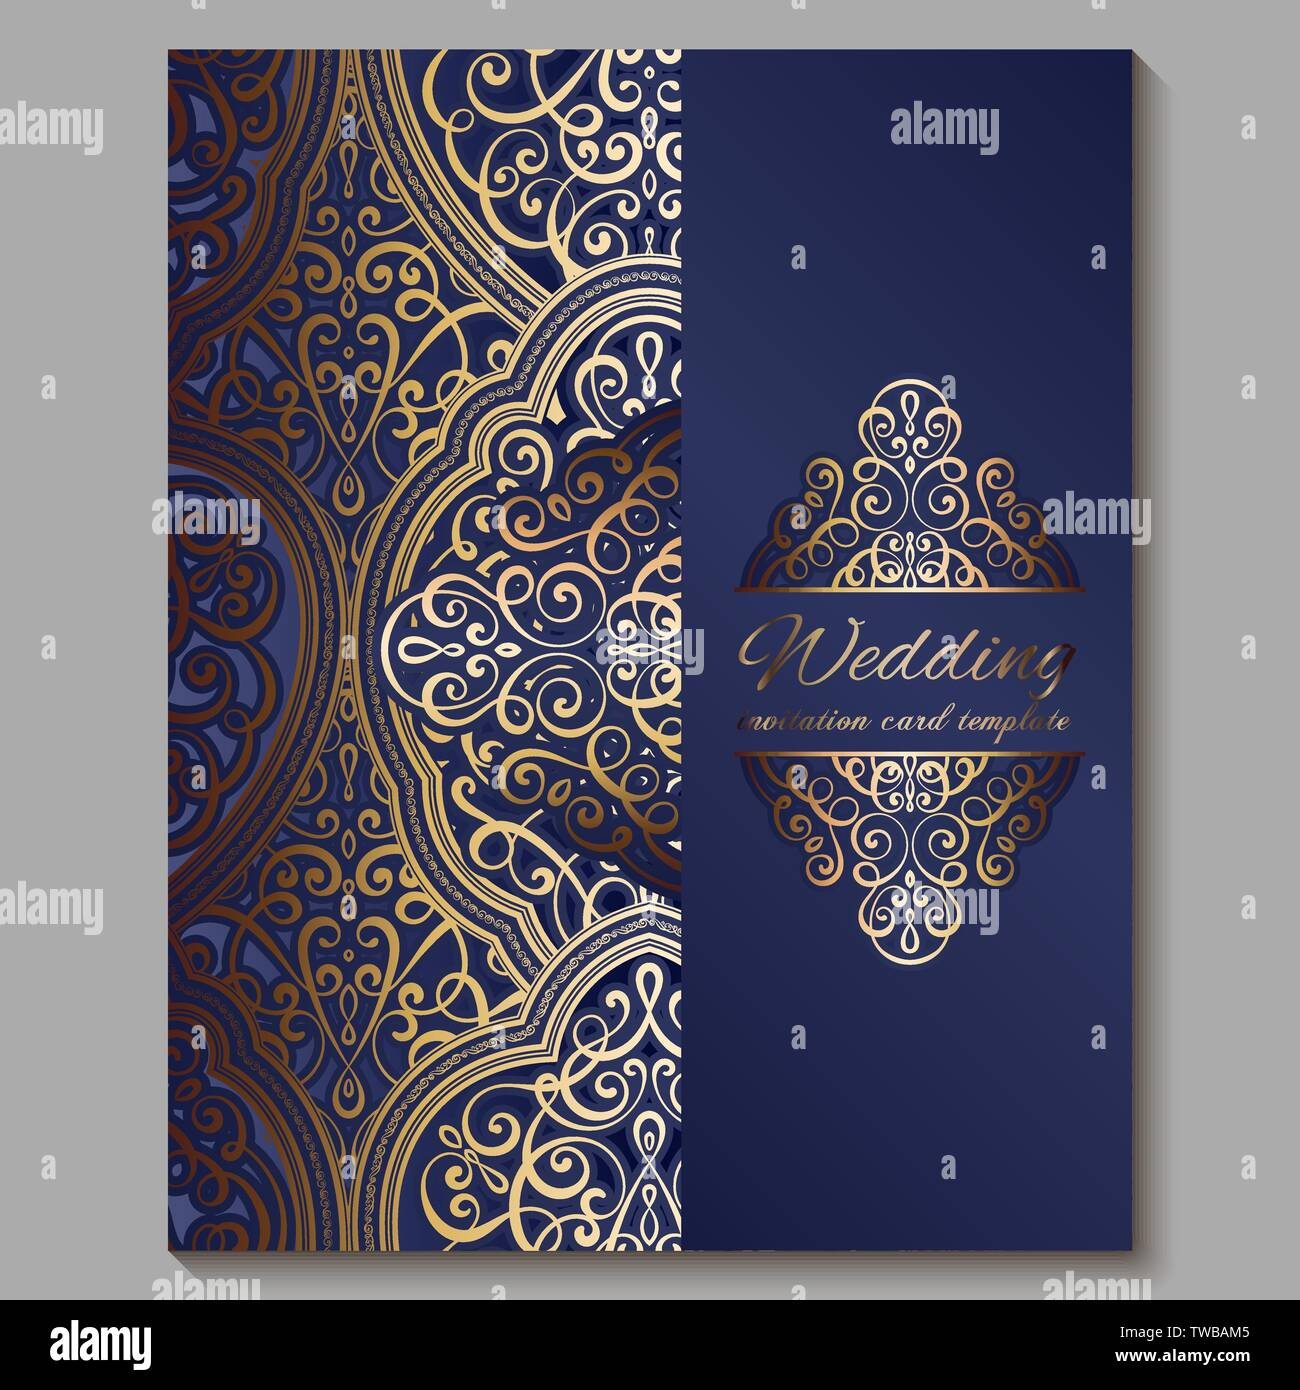 https www alamy com wedding invitation card with gold shiny eastern and baroque rich foliage royal blue ornate islamic background for your design islam arabic indian image256561429 html